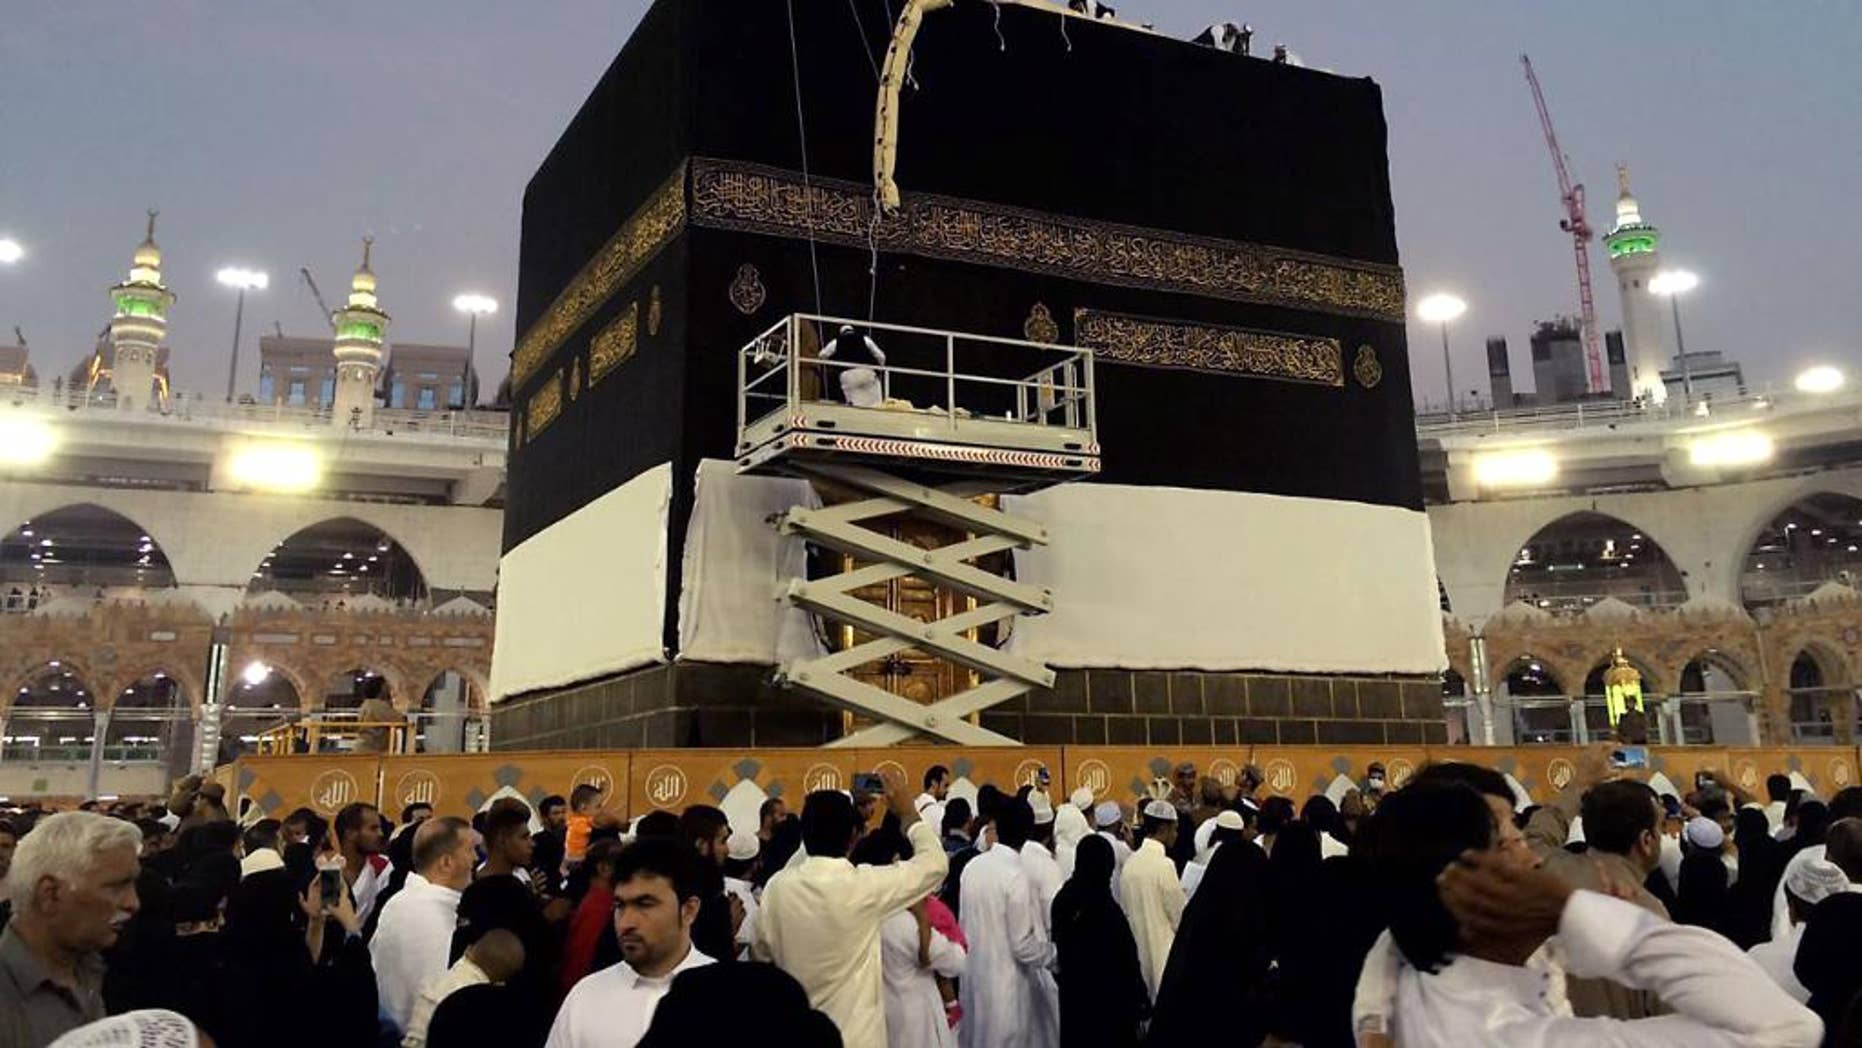 Saudi workers change the Kiswah (the cloth that covers the Kaaba) in Mecca, Saudi Arabia, Sunday, Sept. 11, 2016. Workers change the Kiswah once a year when pilgrims leave for the plains of Mount Arafat during the Hajj. (AP Photo/ Hussein Malla)